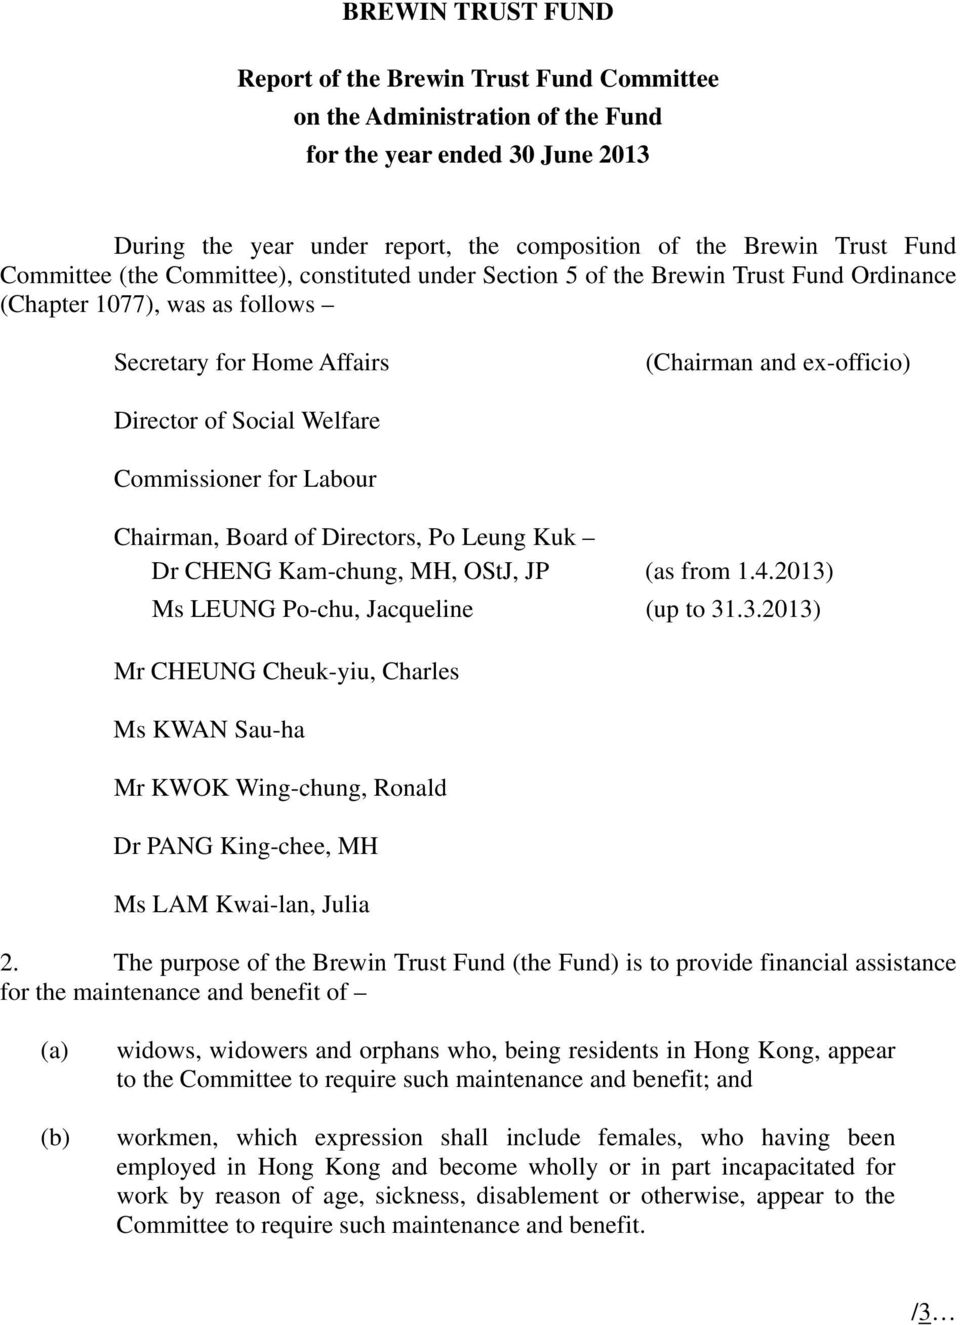 Welfare Commissioner for Labour Chairman, Board of Directors, Po Leung Kuk Dr CHENG Kam-chung, MH, OStJ, JP (as from 1.4.2013)